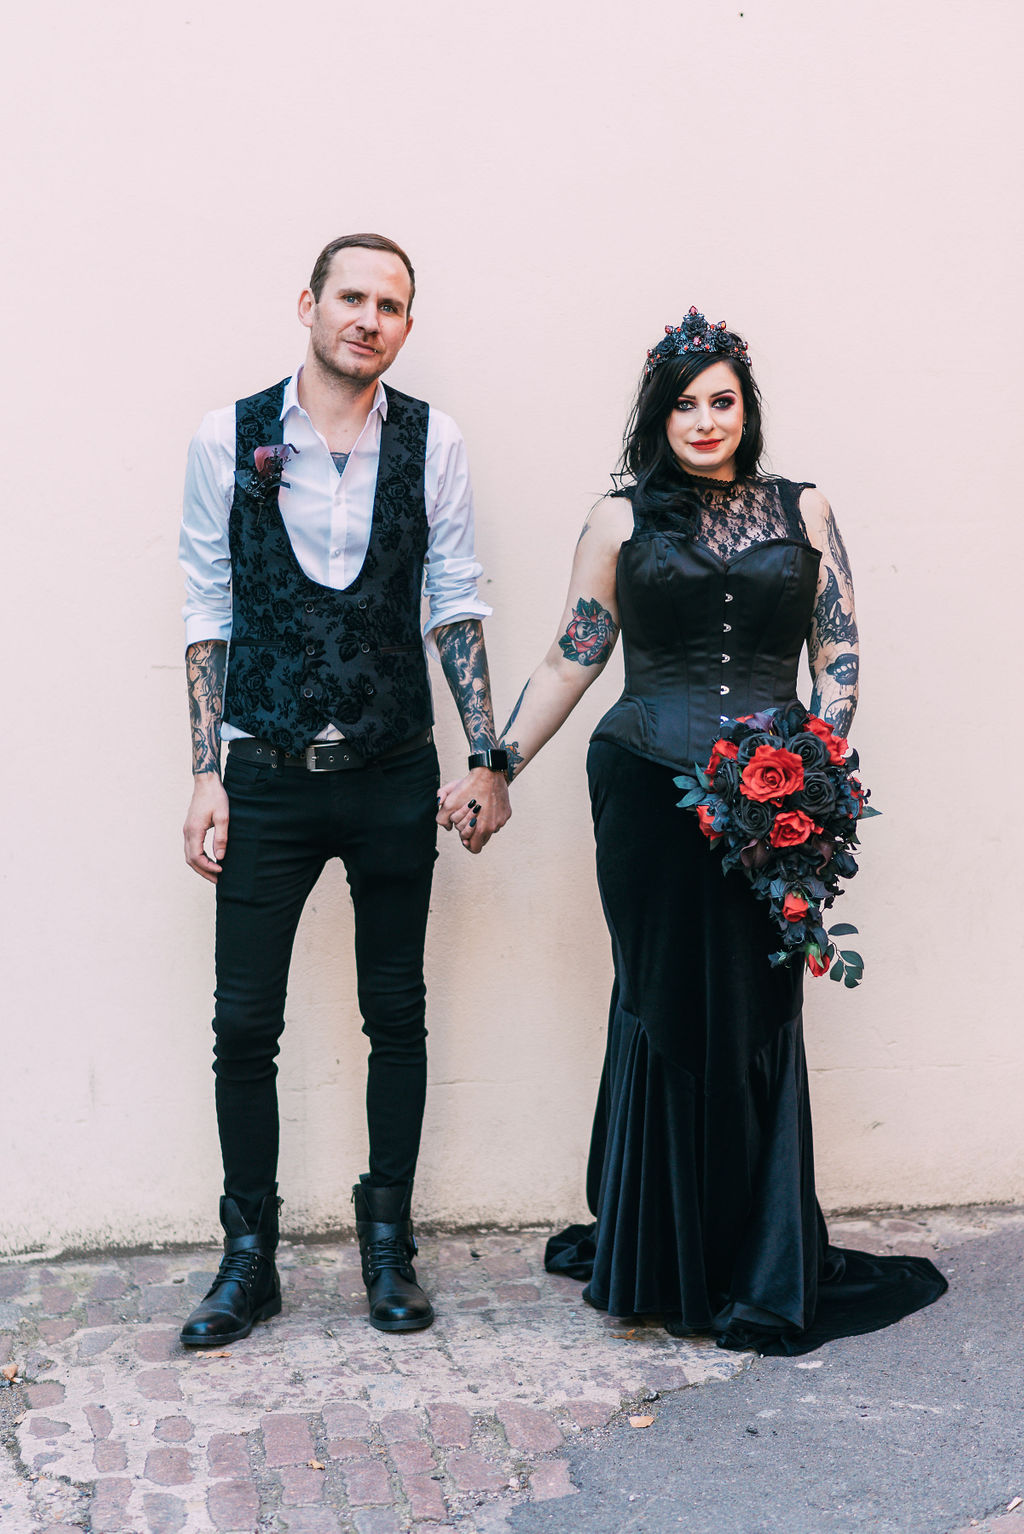 This couple went for a romantic Gothic vampire wedding, which was completely about them